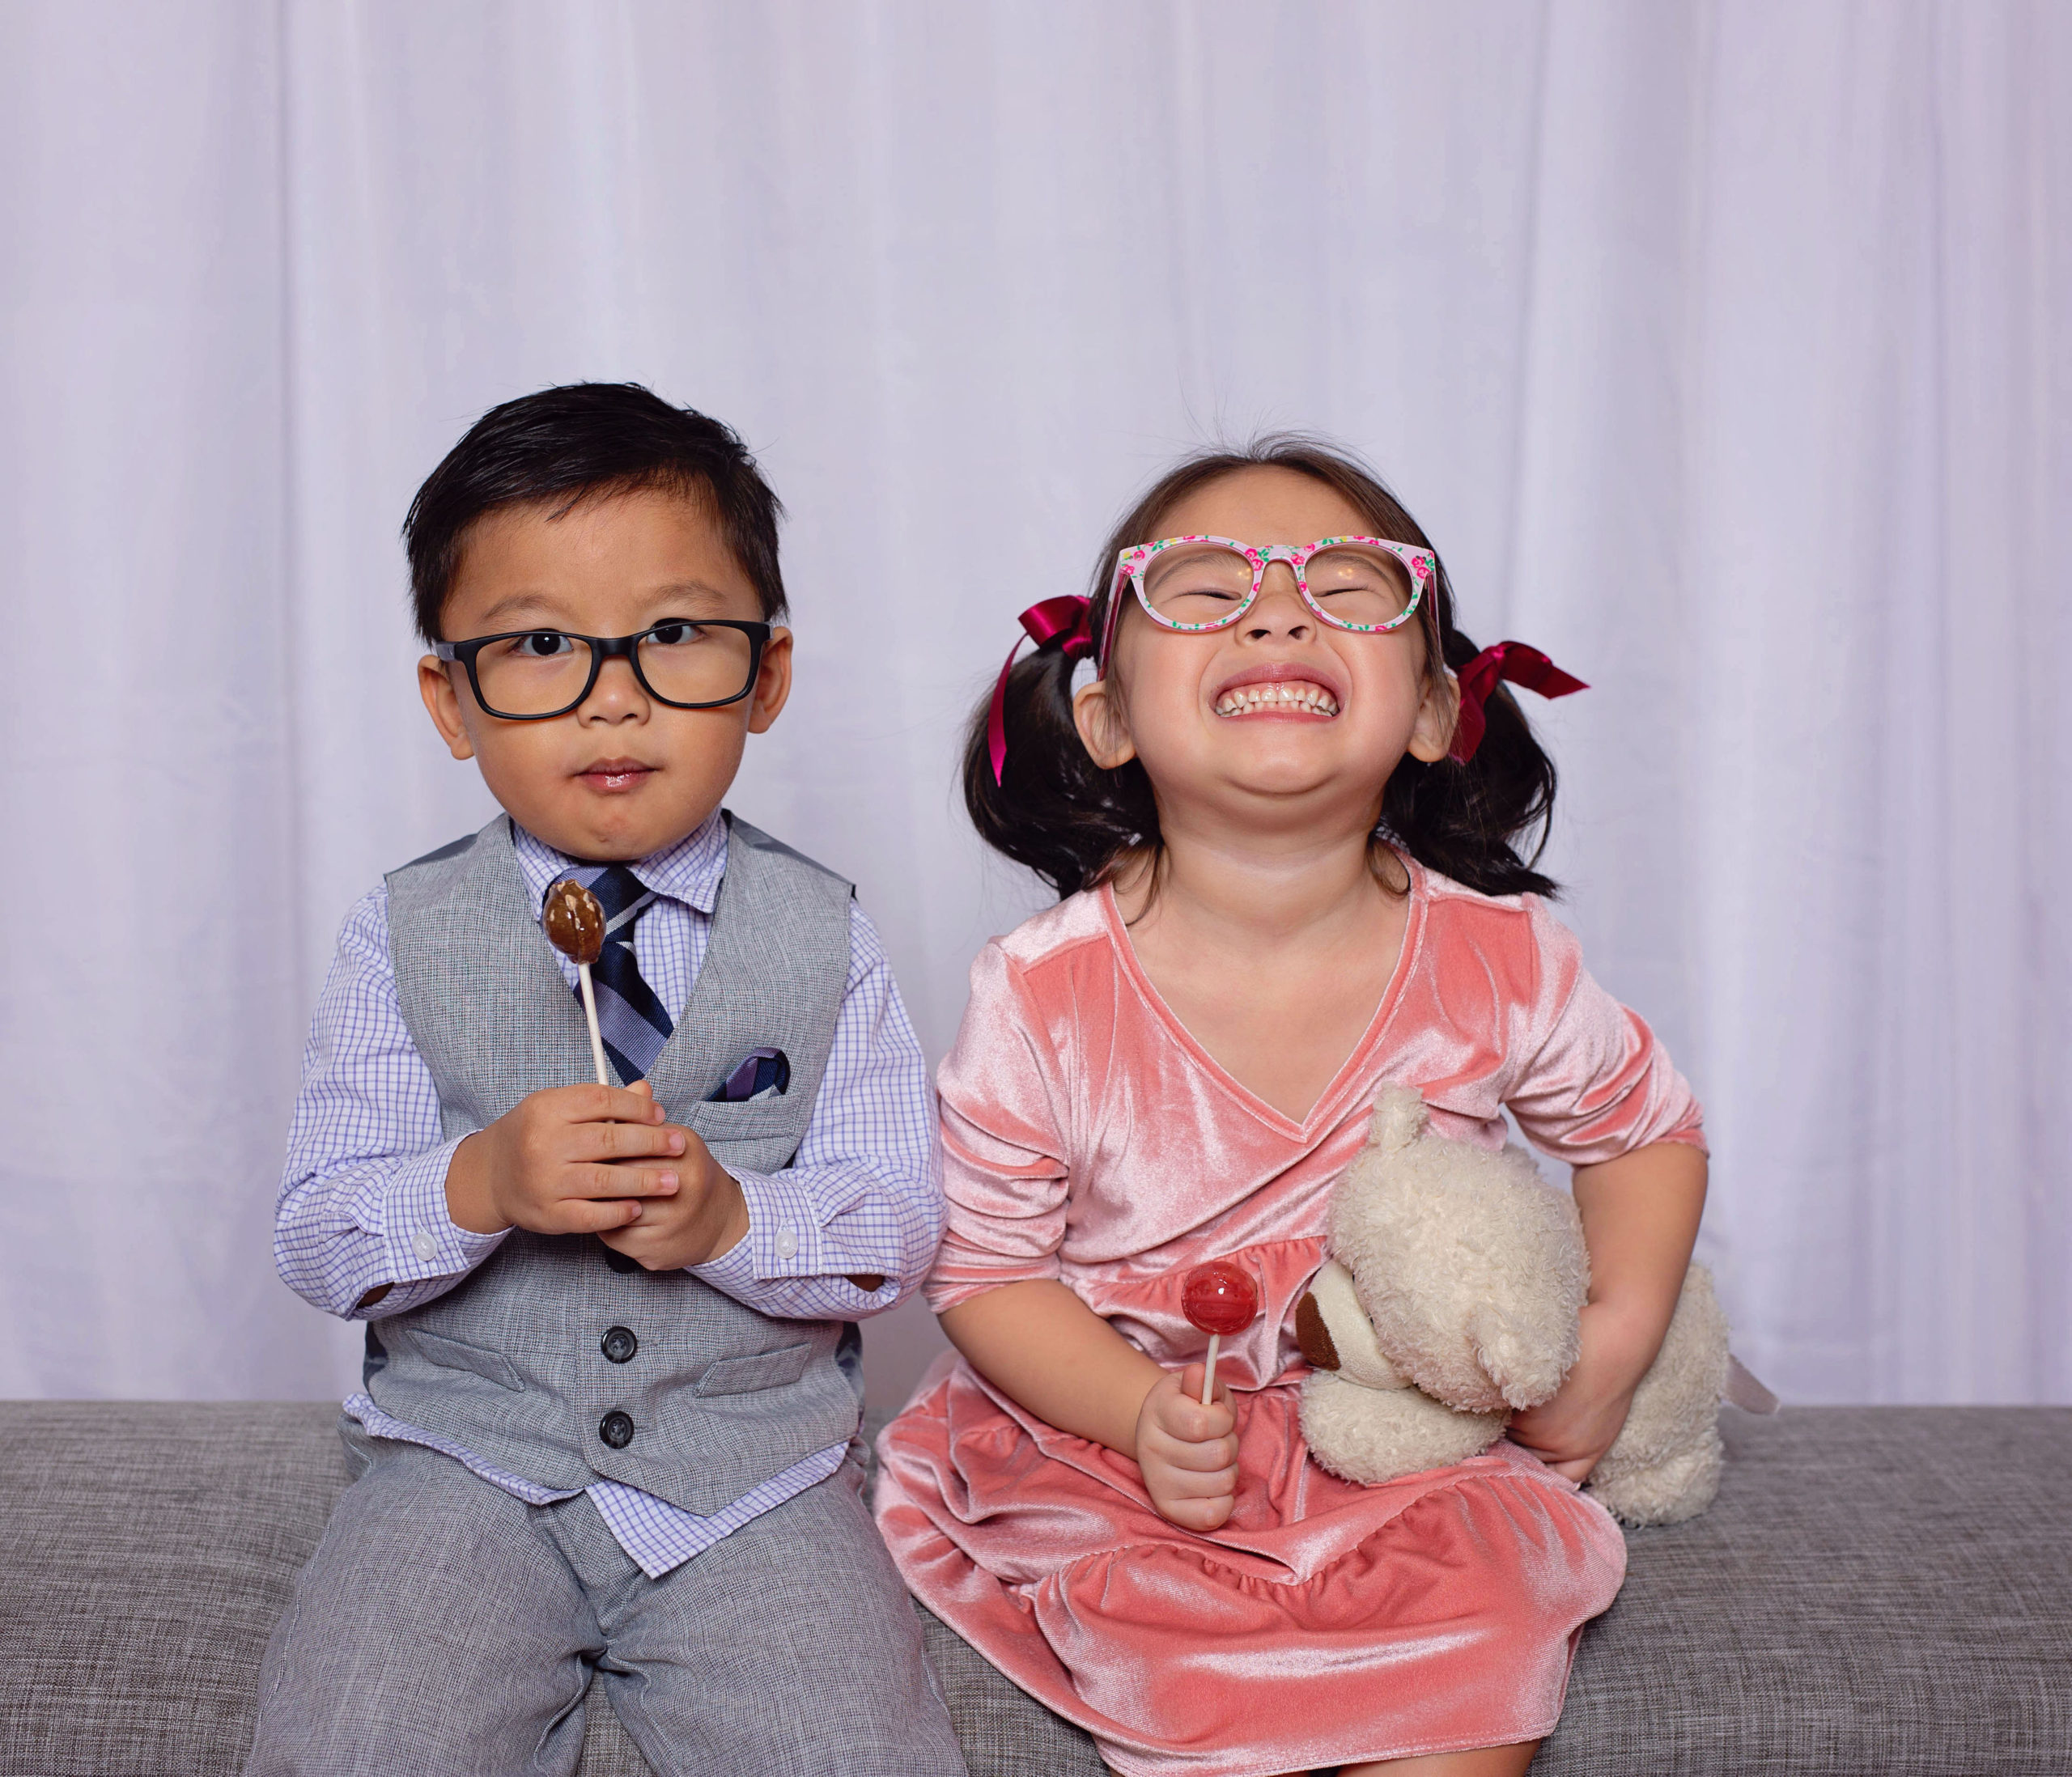 Kids and Glasses